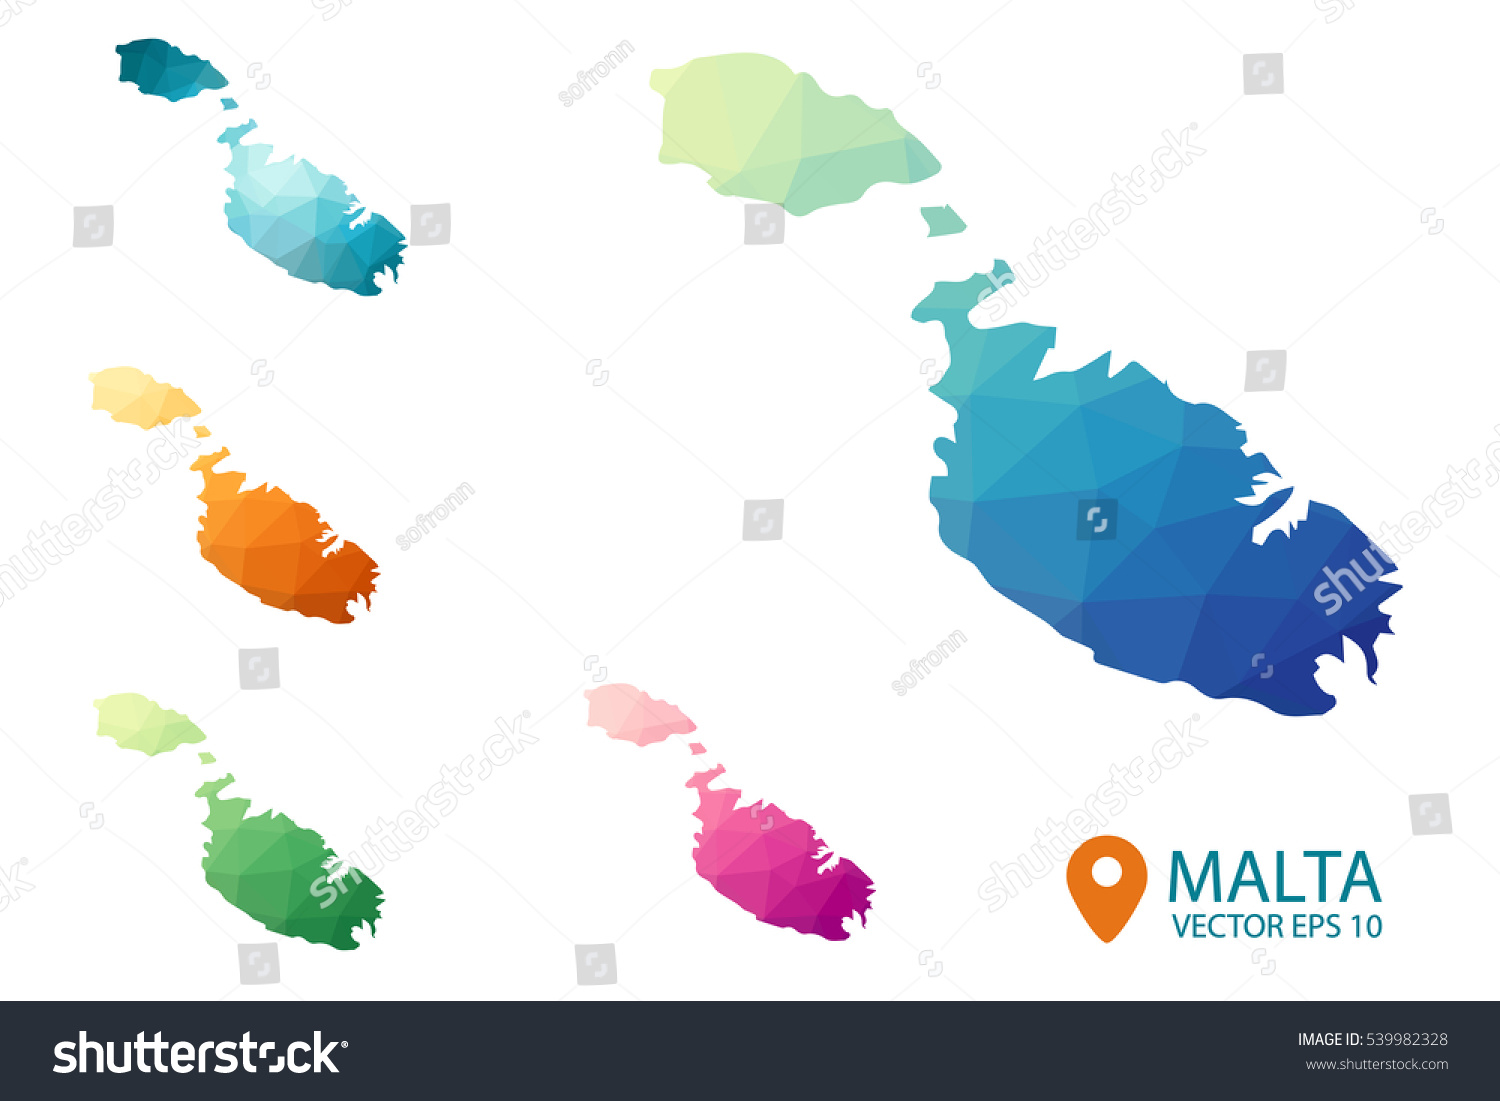 Set vector malta maps bright gradient stock vector 2018 539982328 set of vector malta maps bright gradient map of country in low poly style gumiabroncs Images